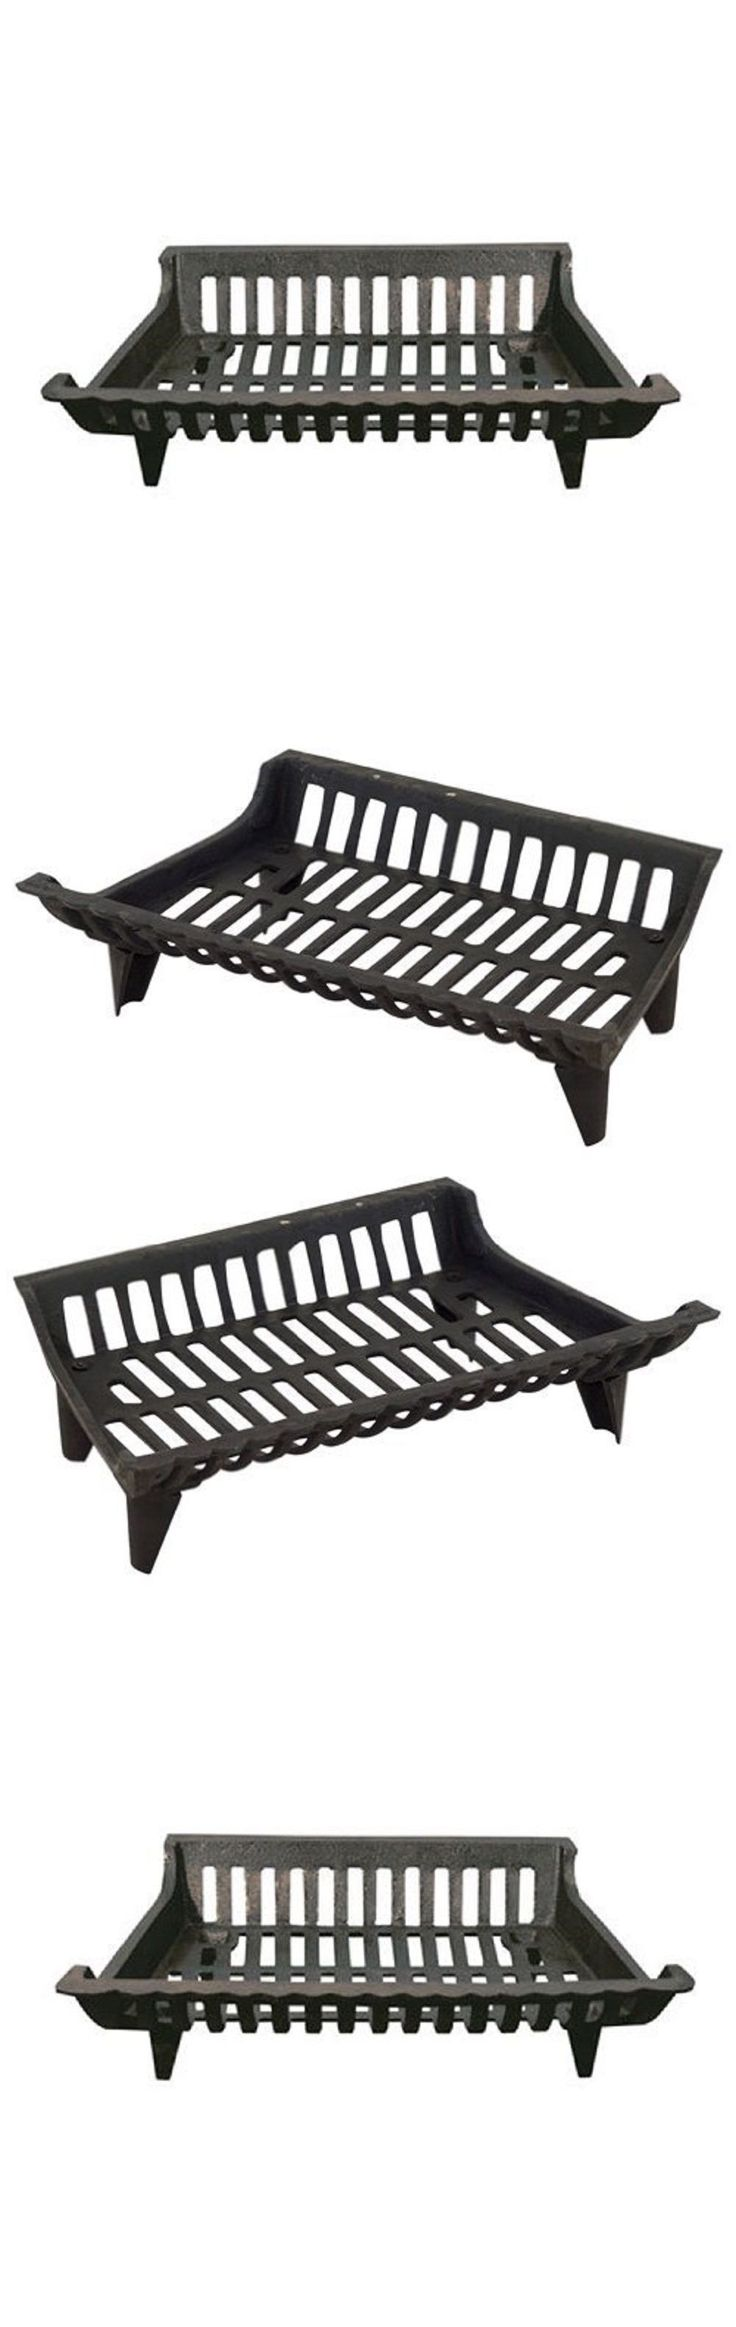 wood grates diy black steel fireplace grate wrought iron with